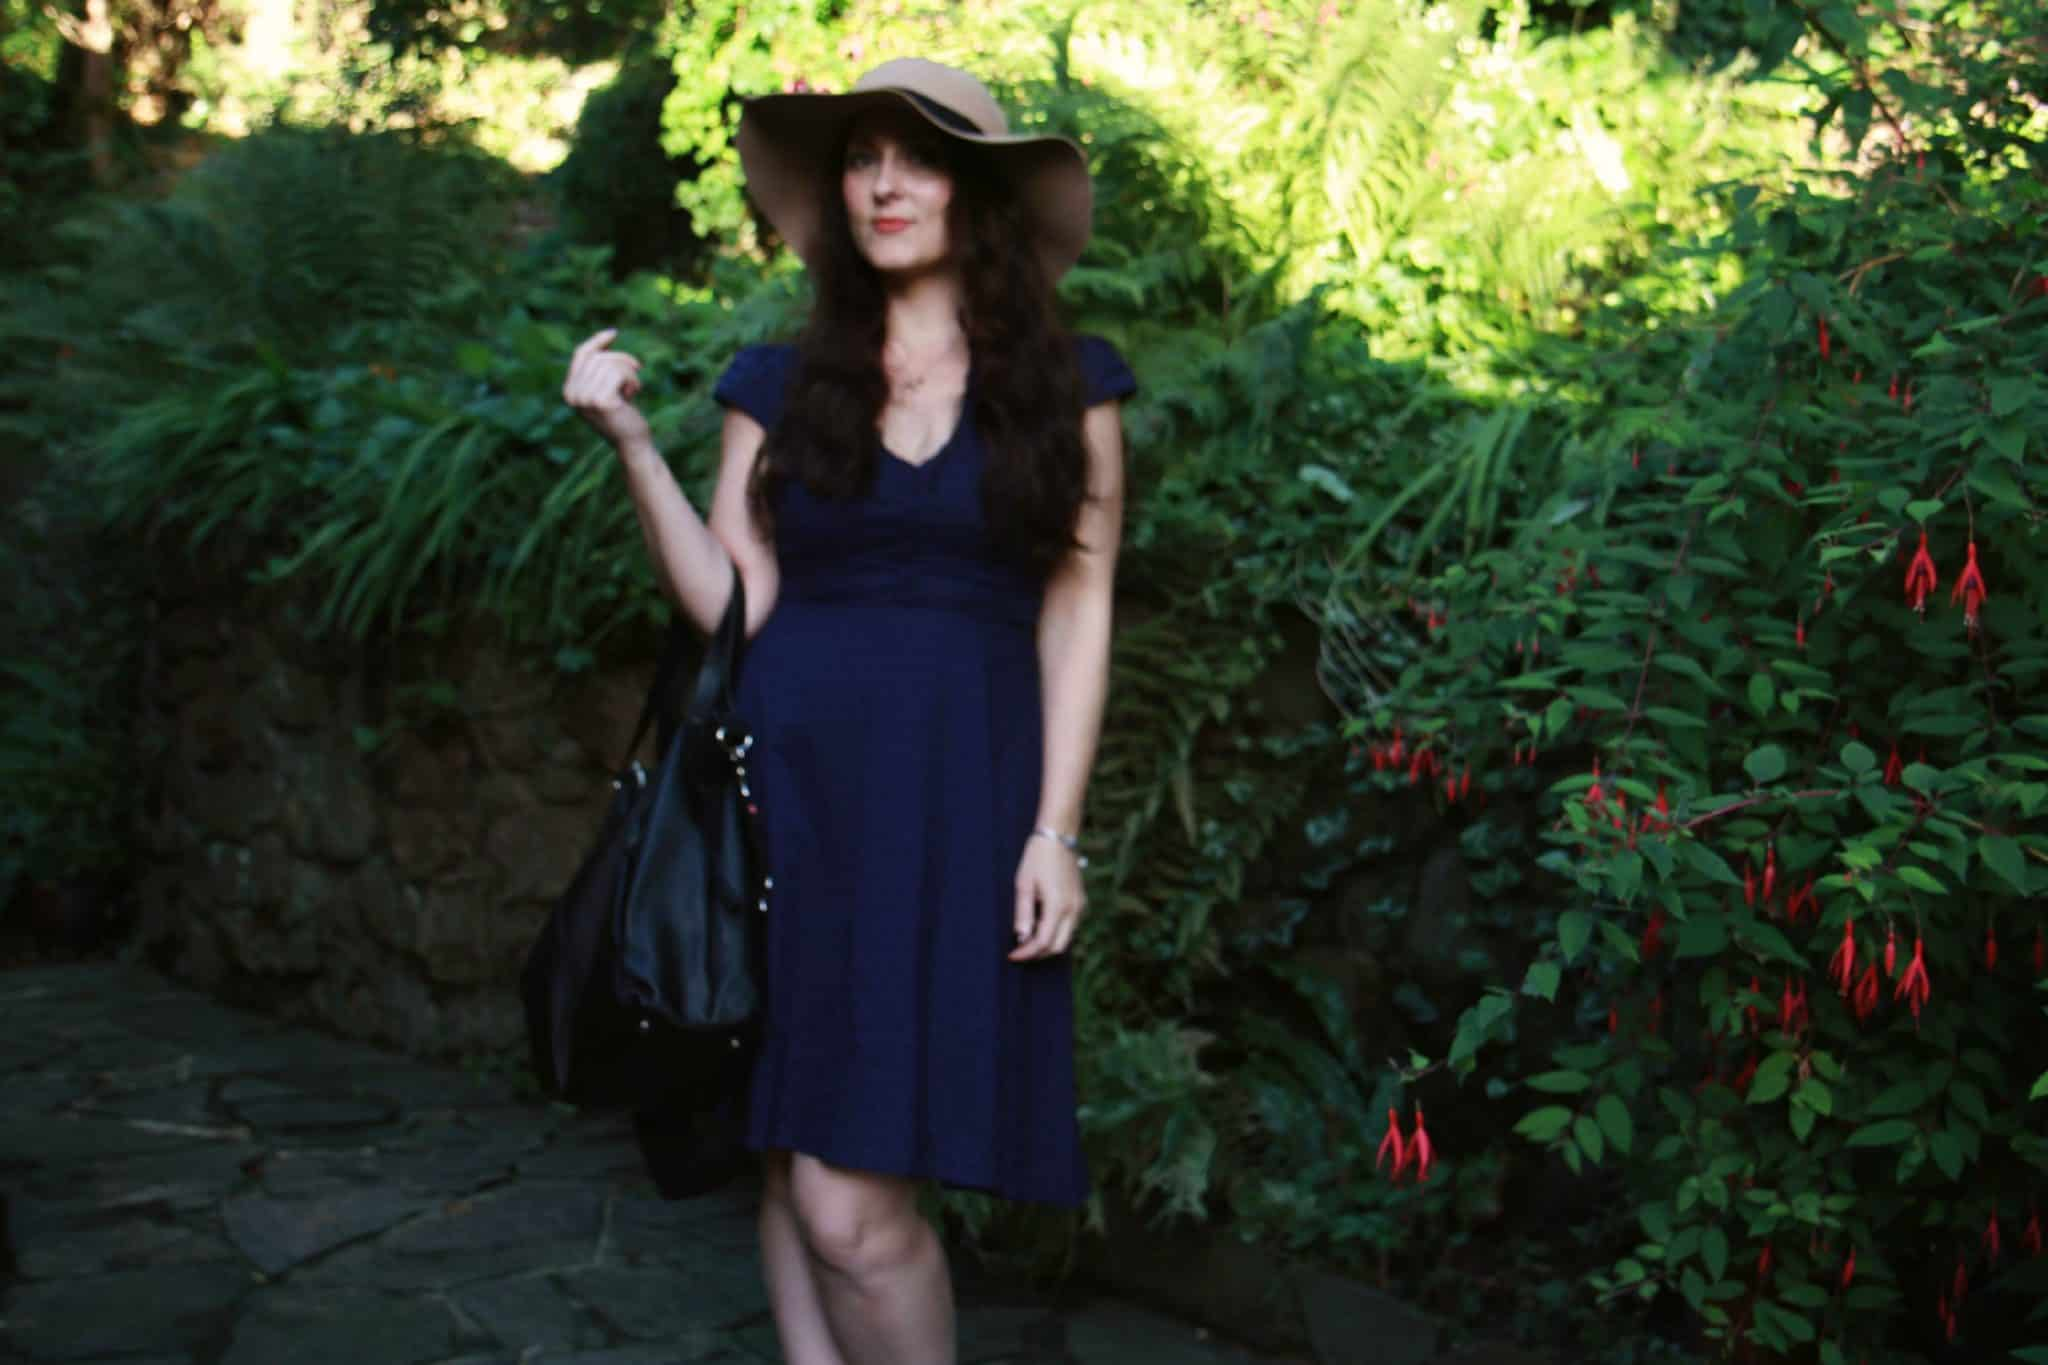 storksak bag teamed with dress from Fever London and Topshop floppy hat